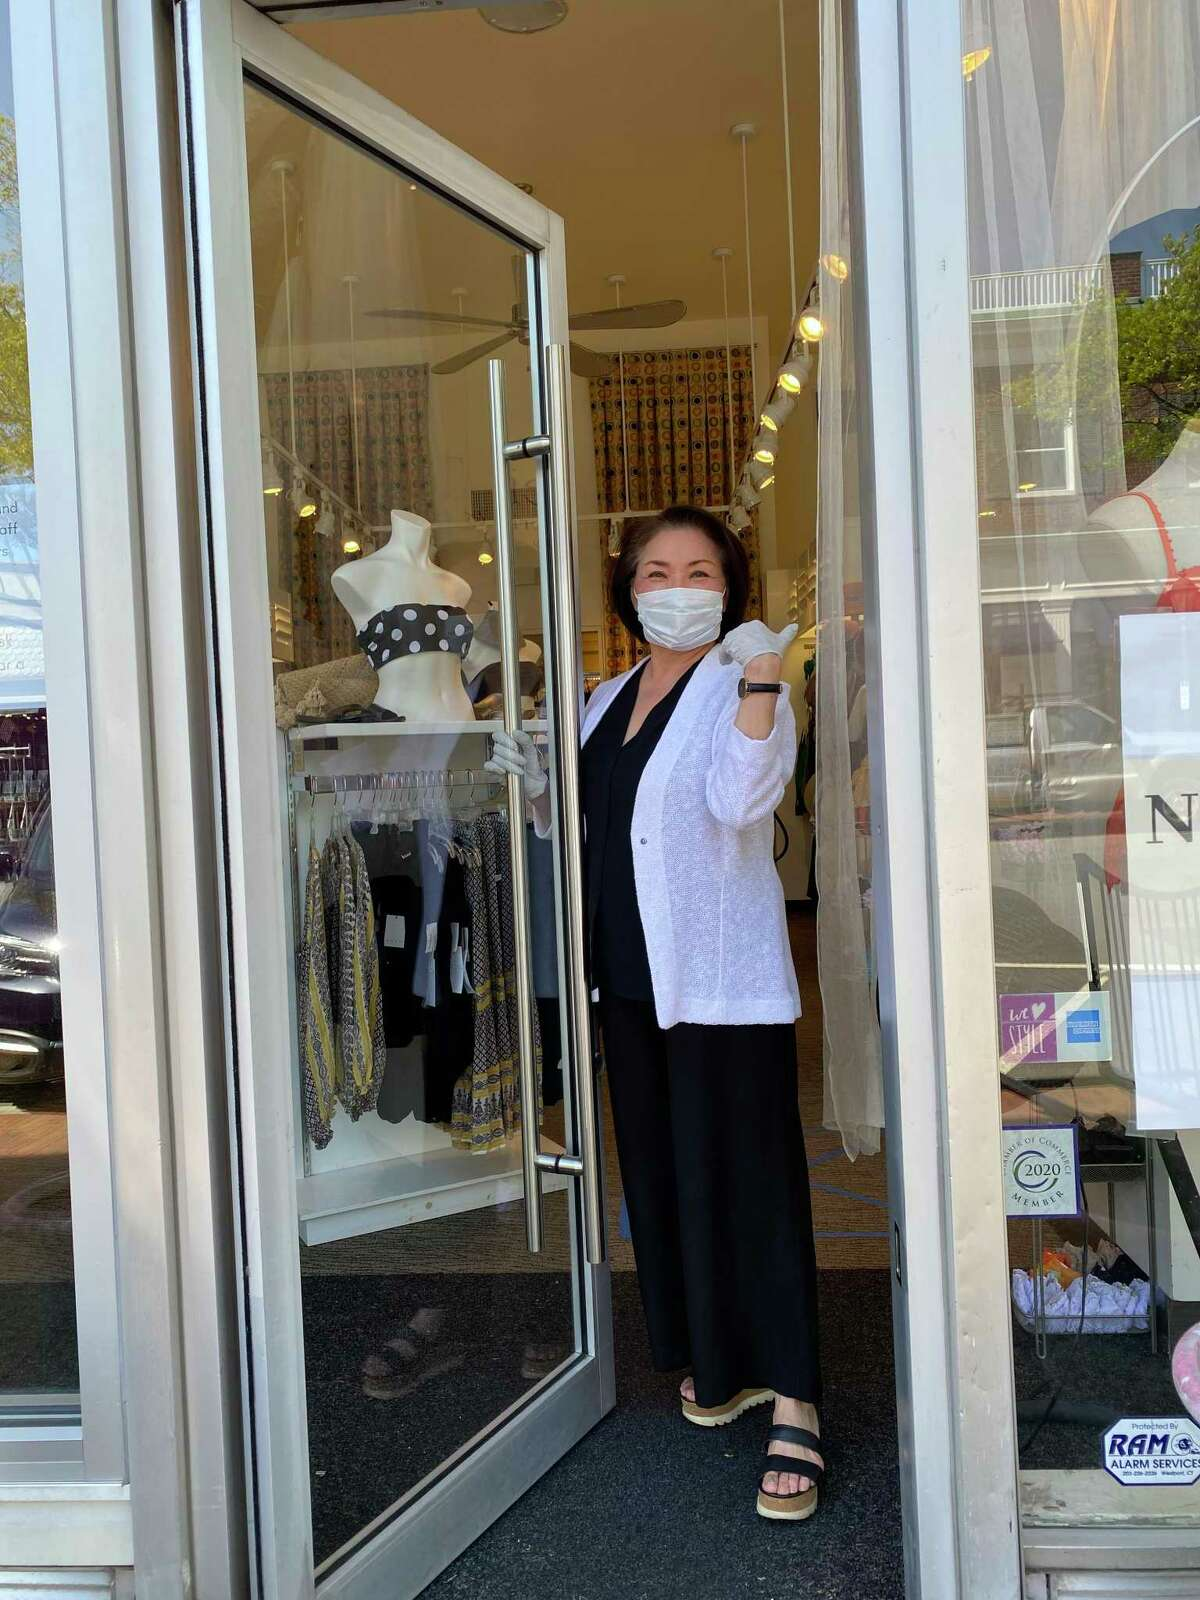 Susan Langford welcomes customers back to Soleil Toile, which was among the downtown New Canaan stores reopening on Wednesday, May 20, after being closed for some 10 weeks due to COVID-19.